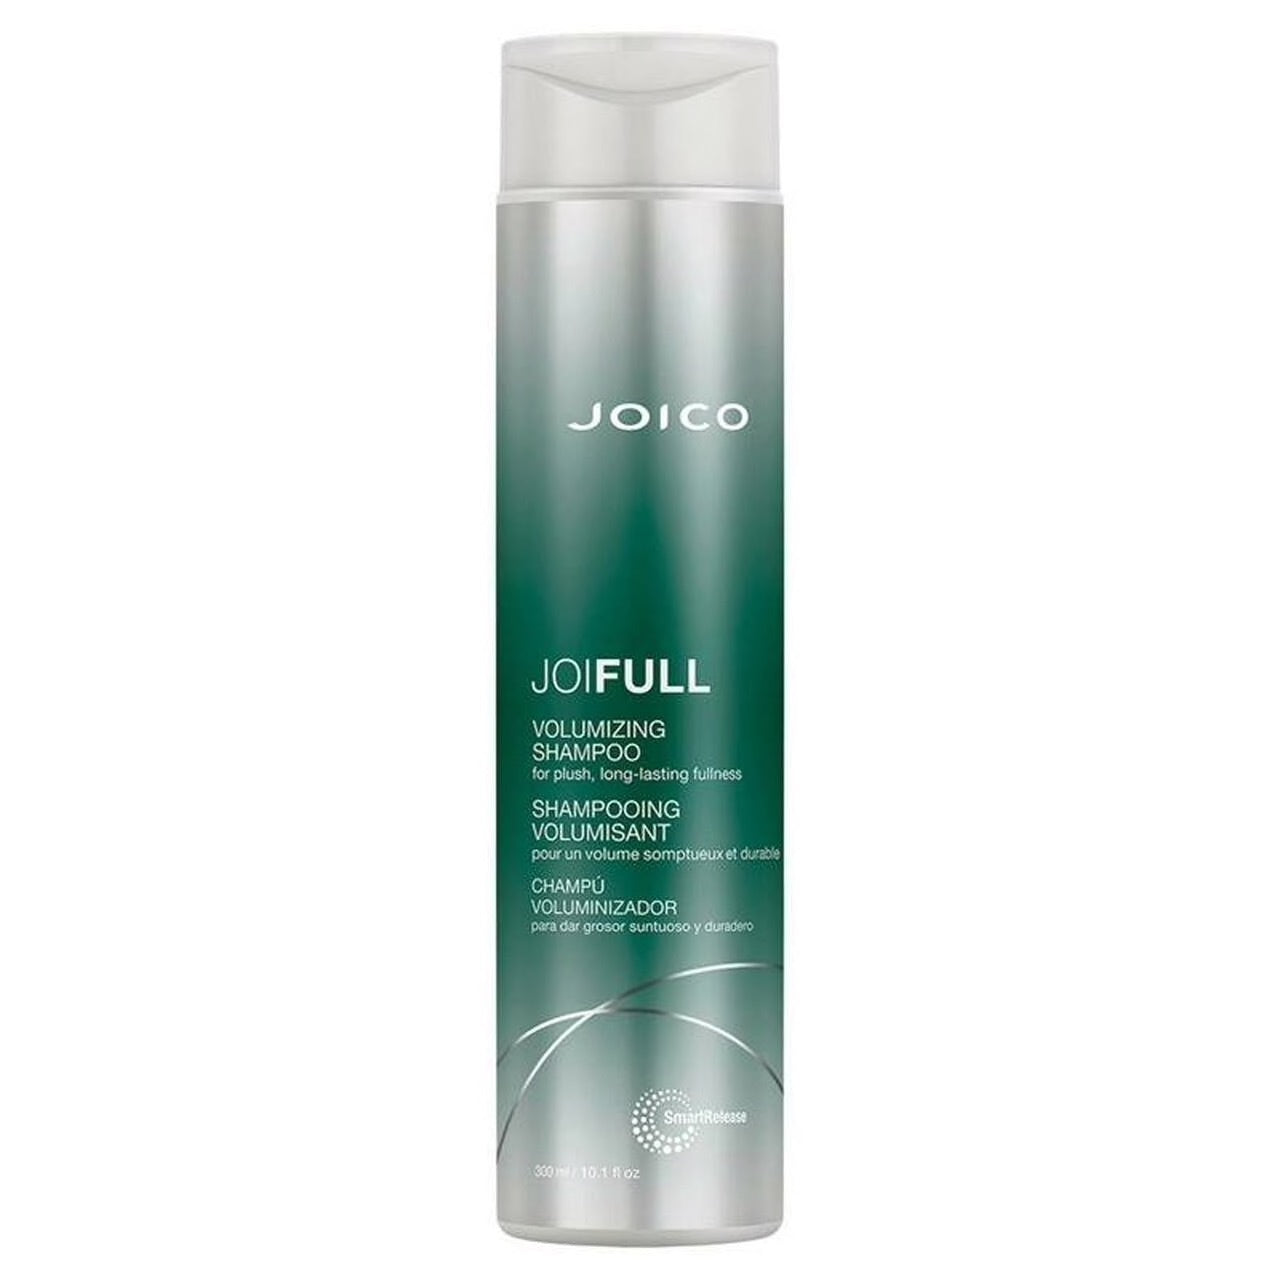 Joico Volumizing Shampoo